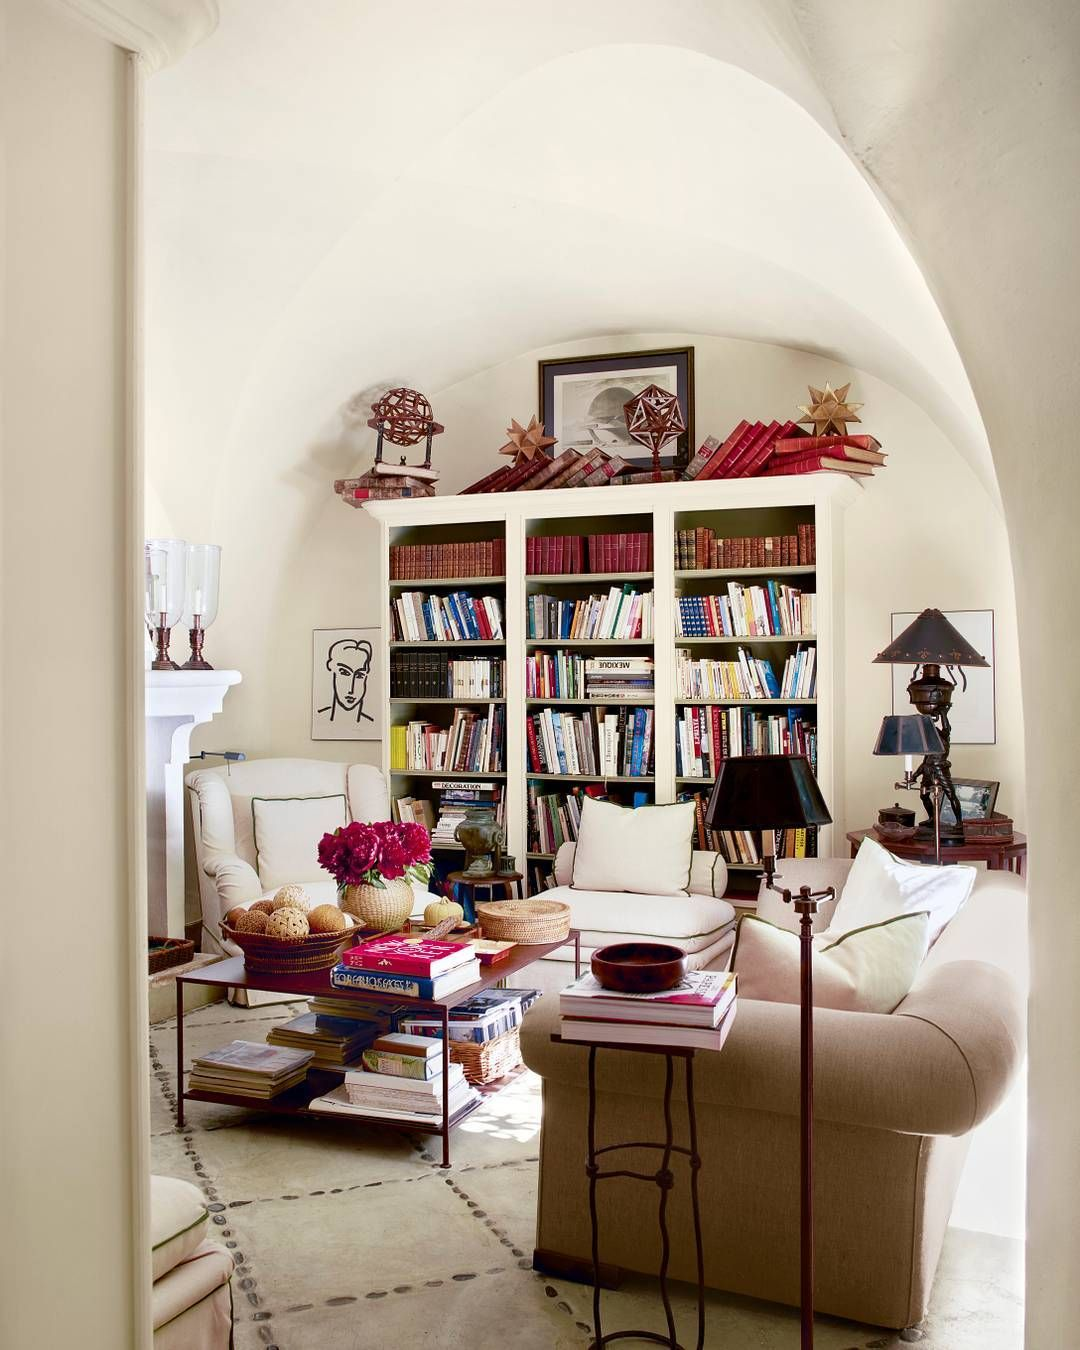 Elle Decor Bookshelves: Living Room Decor, Room Decor